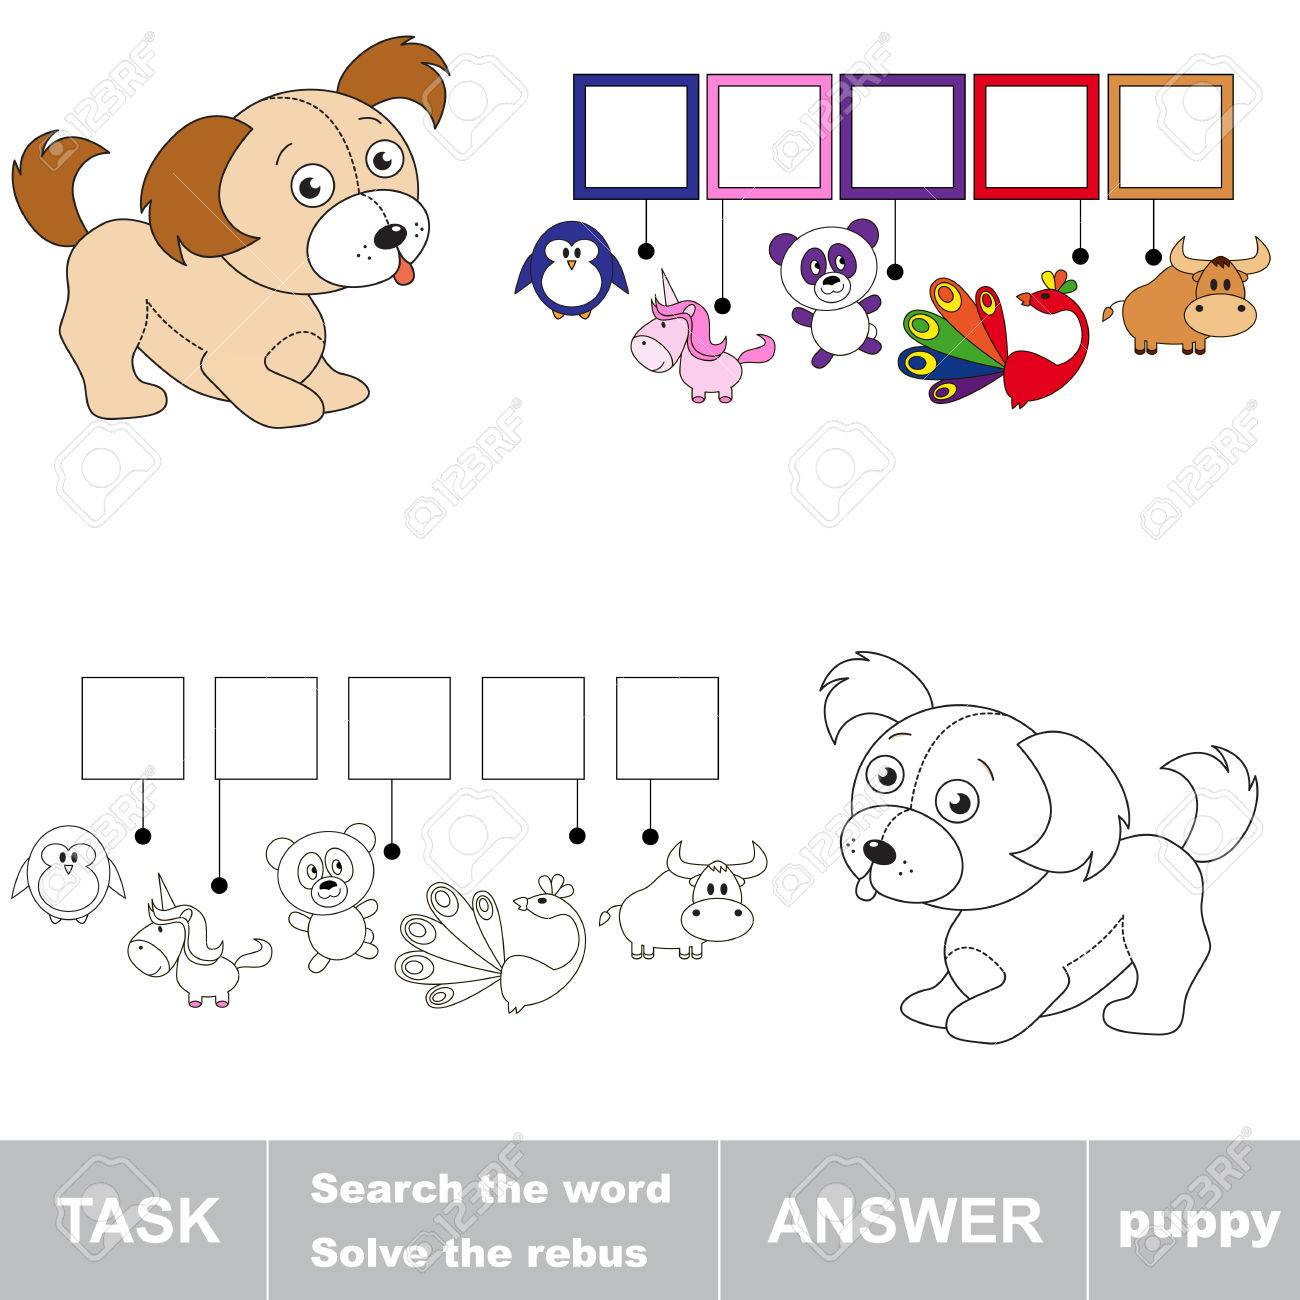 Search the word PUPPY  Find hidden word  Task and answer  Game